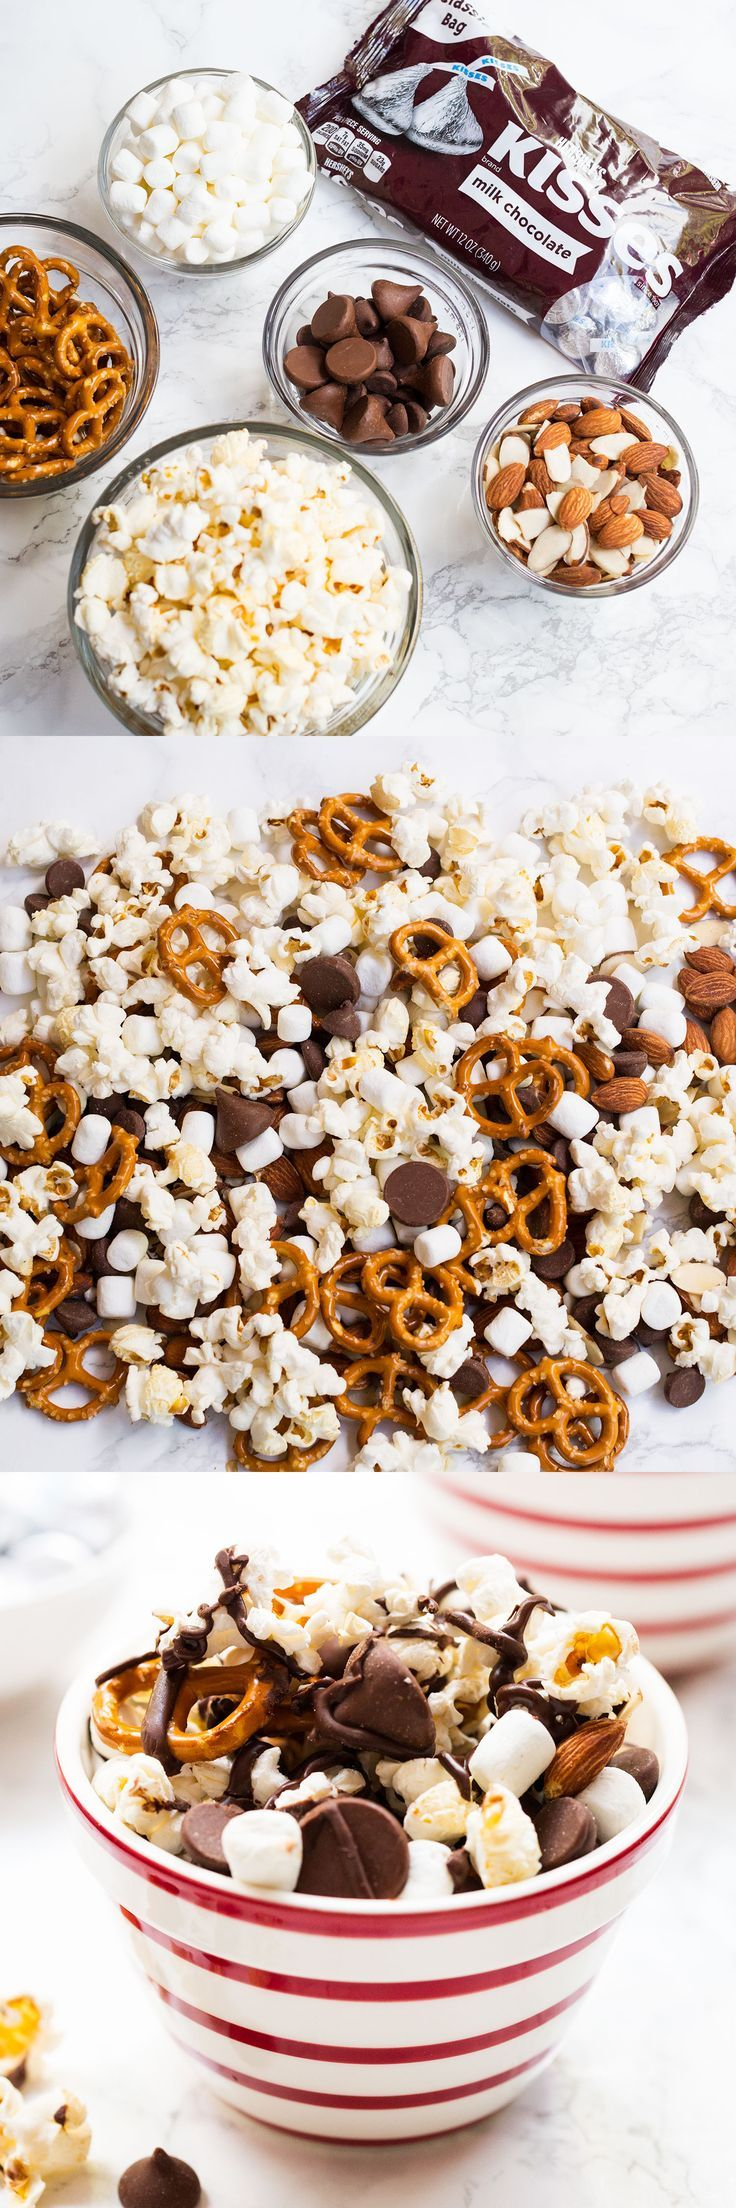 S'mores Mix Easy Dessert... an easy dessert that takes less than 10 minutes and has the sweet and salty combination that everyone loves.